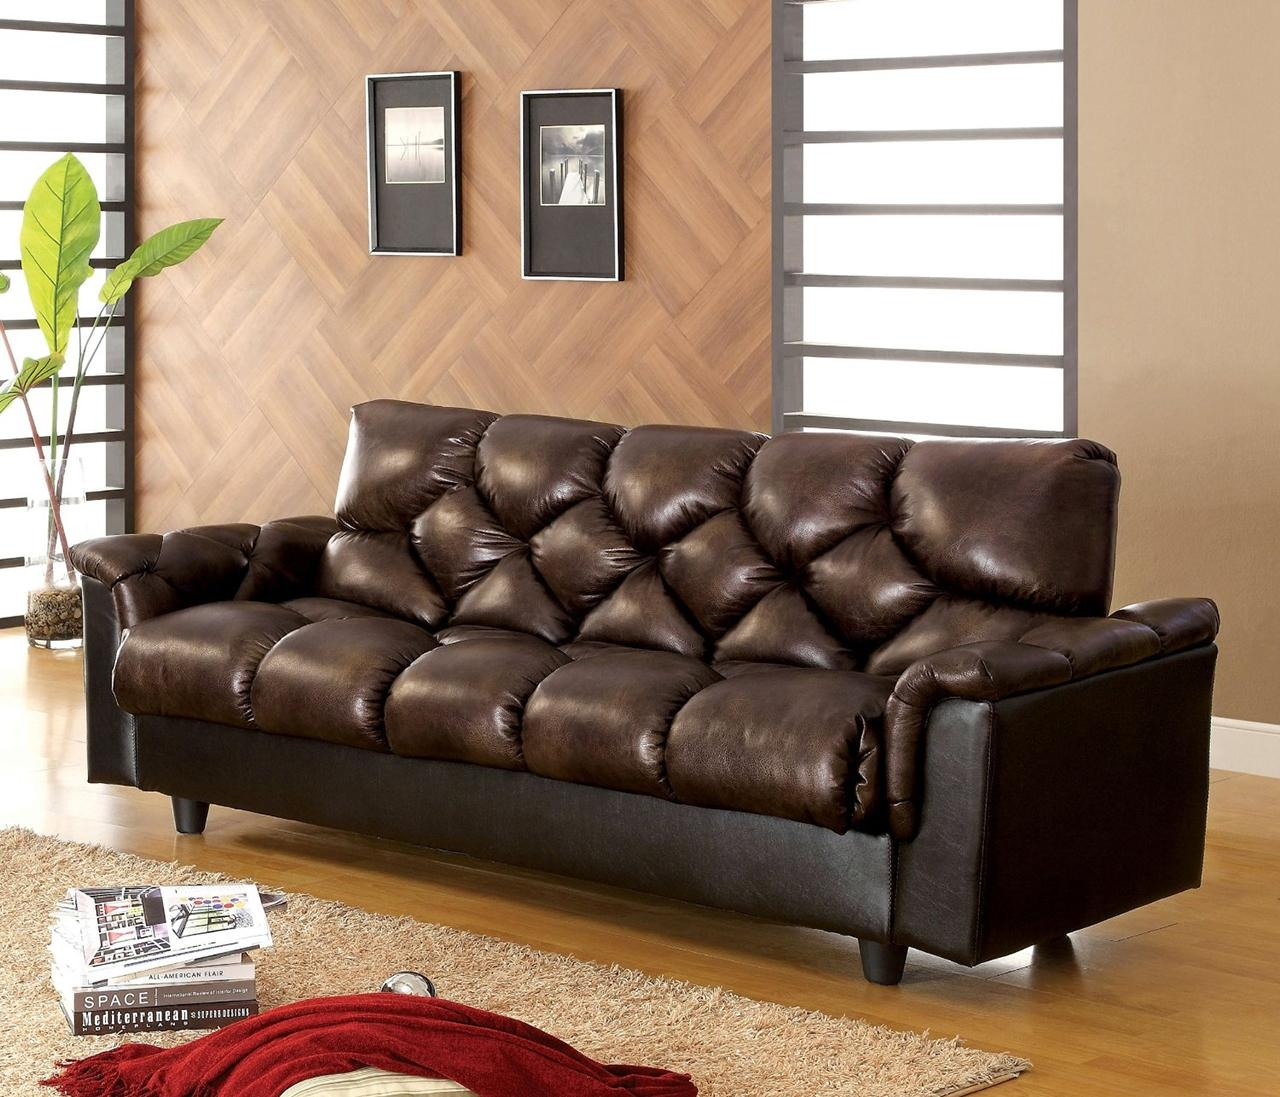 21 ideas of leather storage sofas sofa ideas. Black Bedroom Furniture Sets. Home Design Ideas